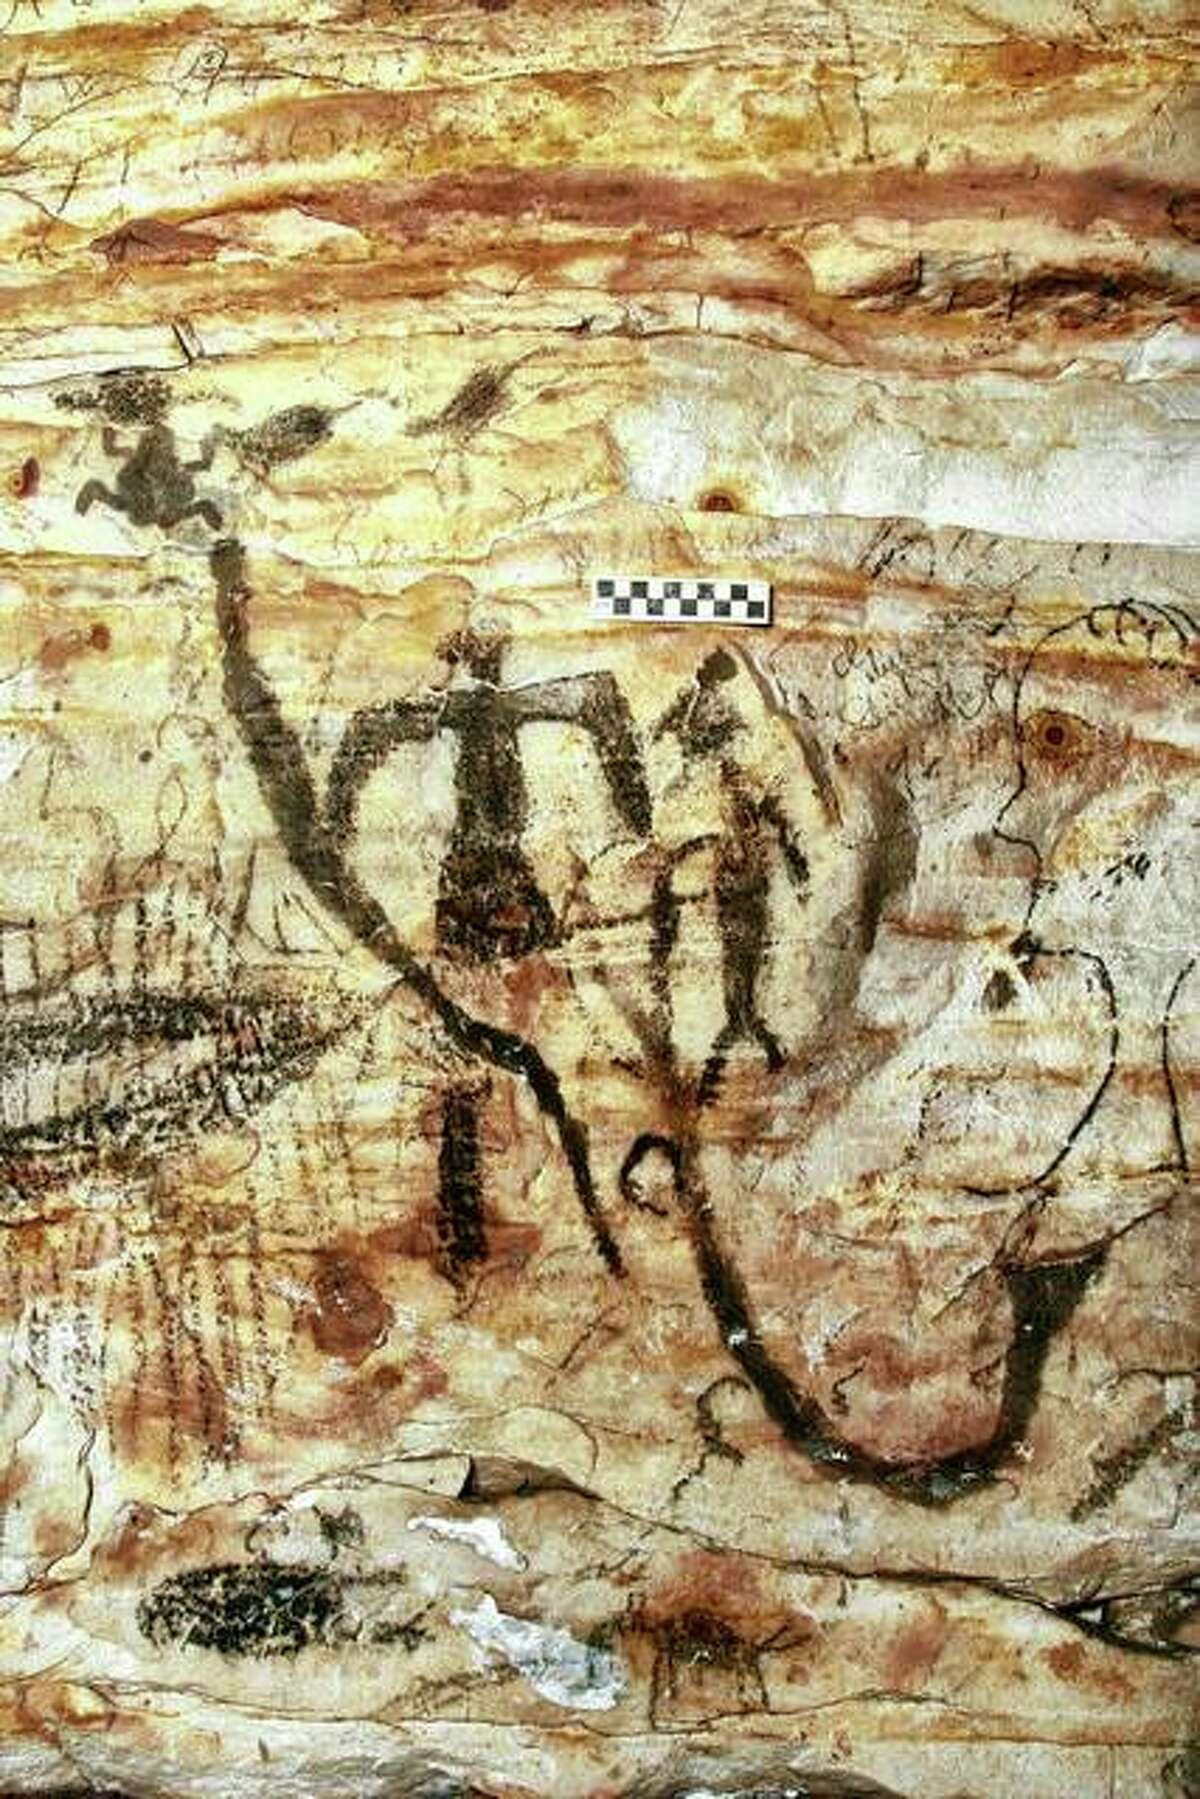 """Experts who have studied """"Picture Cave"""" were concerned about the auction, but the director of the auction company said protections are in place to prohibit the new buyer from exploiting the cave, including a Missouri law that makes doing so a crime."""